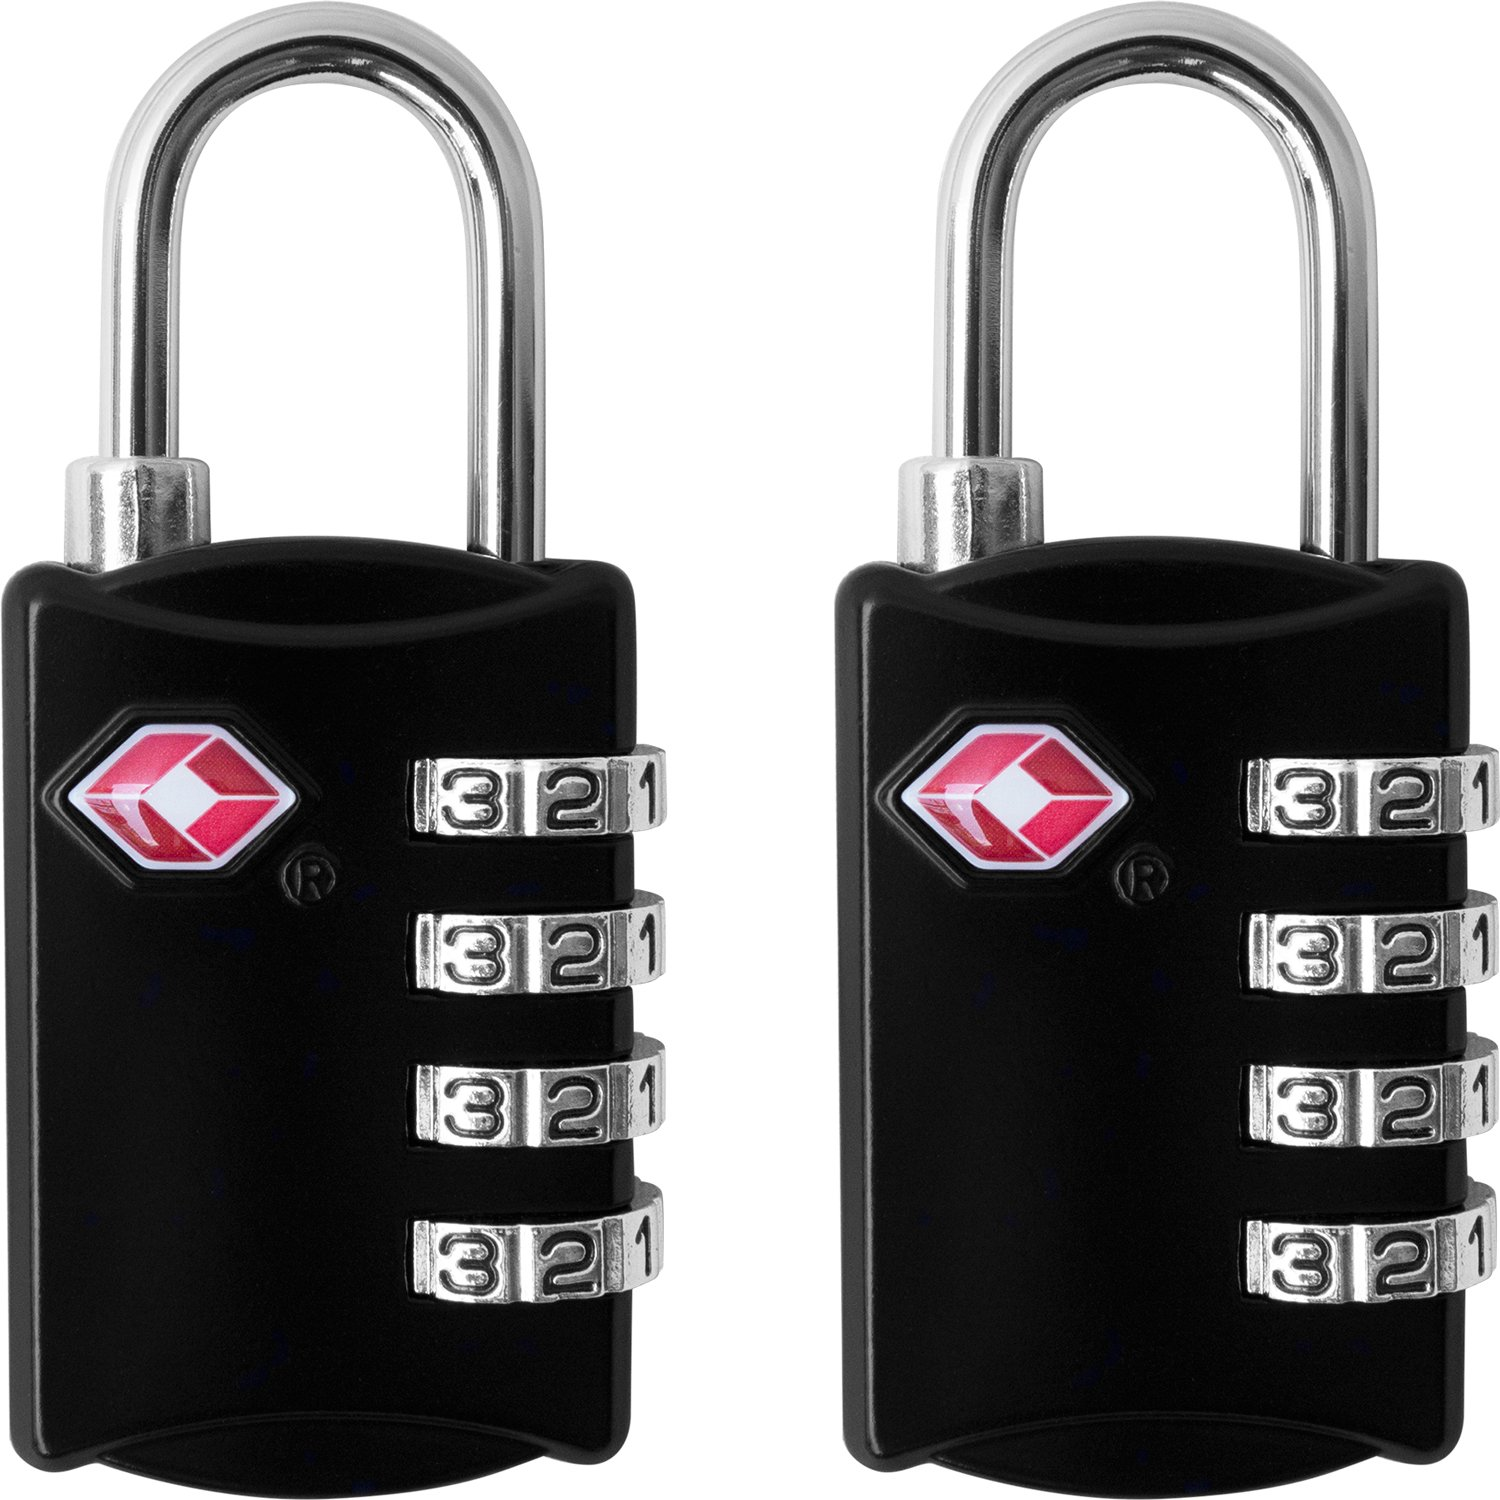 TSA Luggage Locks (2 Pack) - 4 Digit Combination Steel Padlocks - Approved Travel Lock for Suitcases & Baggage - Black by desired tools